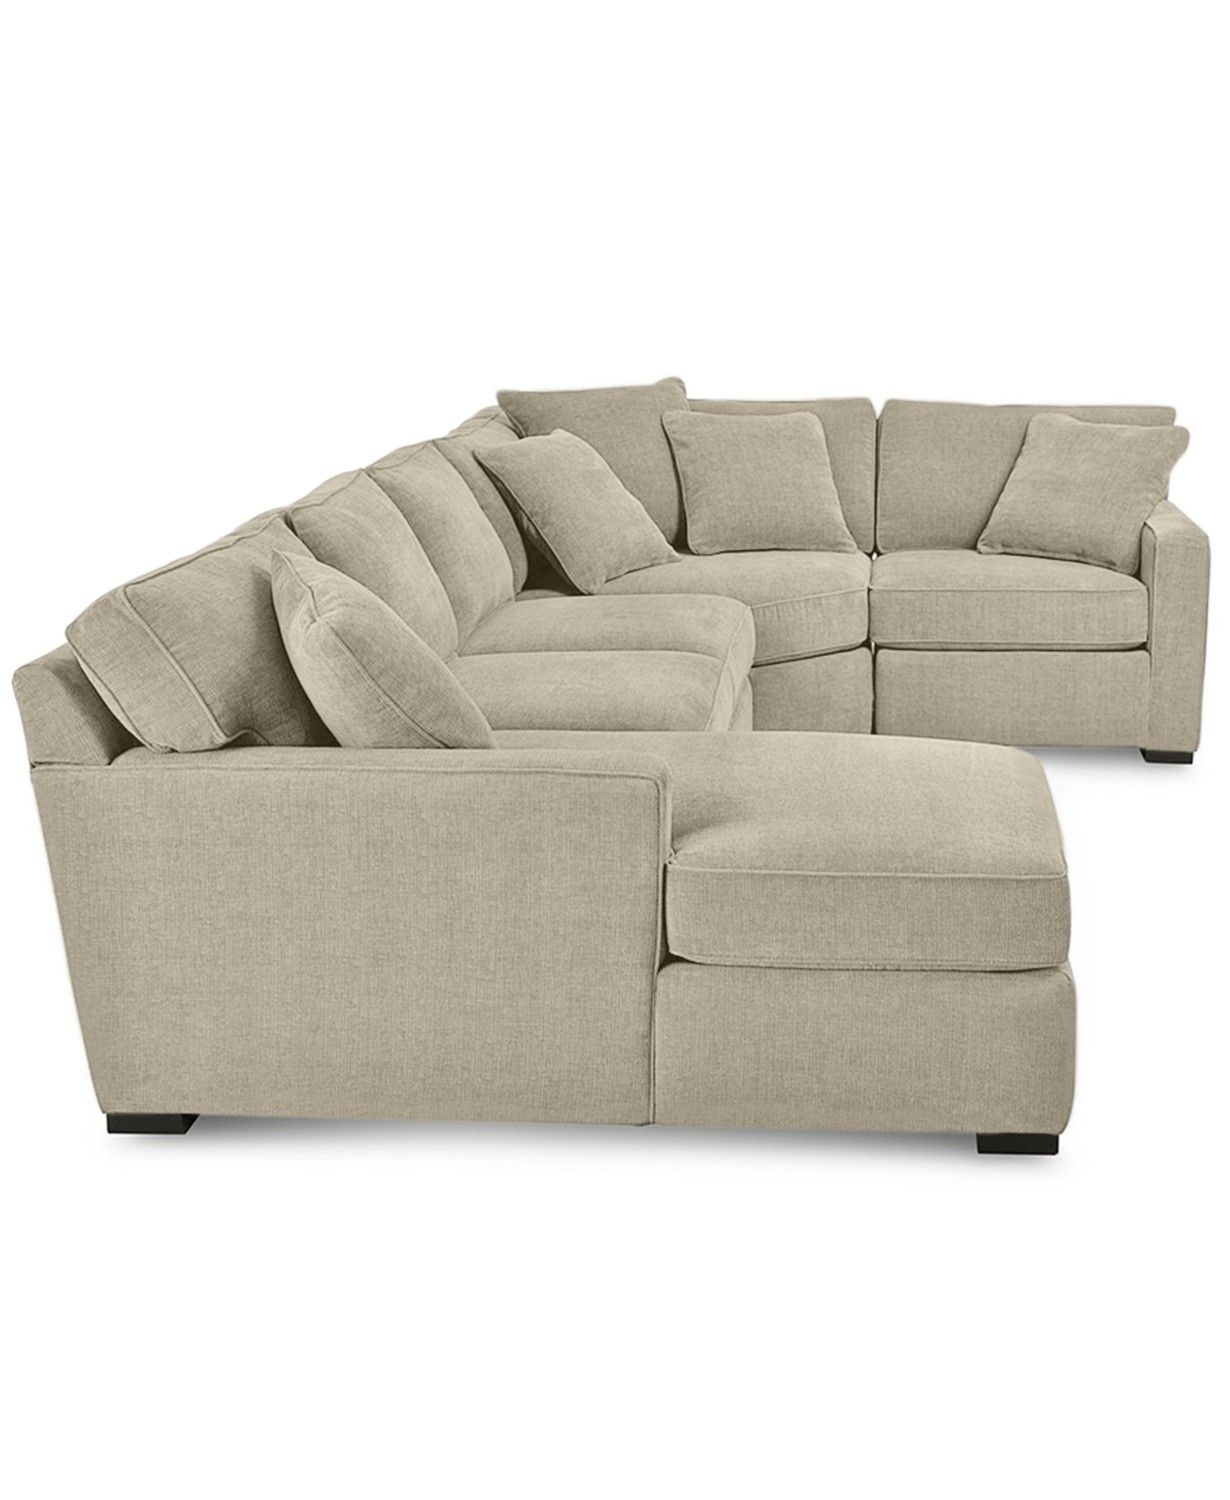 Radley 4 Piece Fabric Chaise Sectional Sofa Created For Macy S Sectional Sofa Comfy Sectional Sofa With Chaise Sectional Sofa